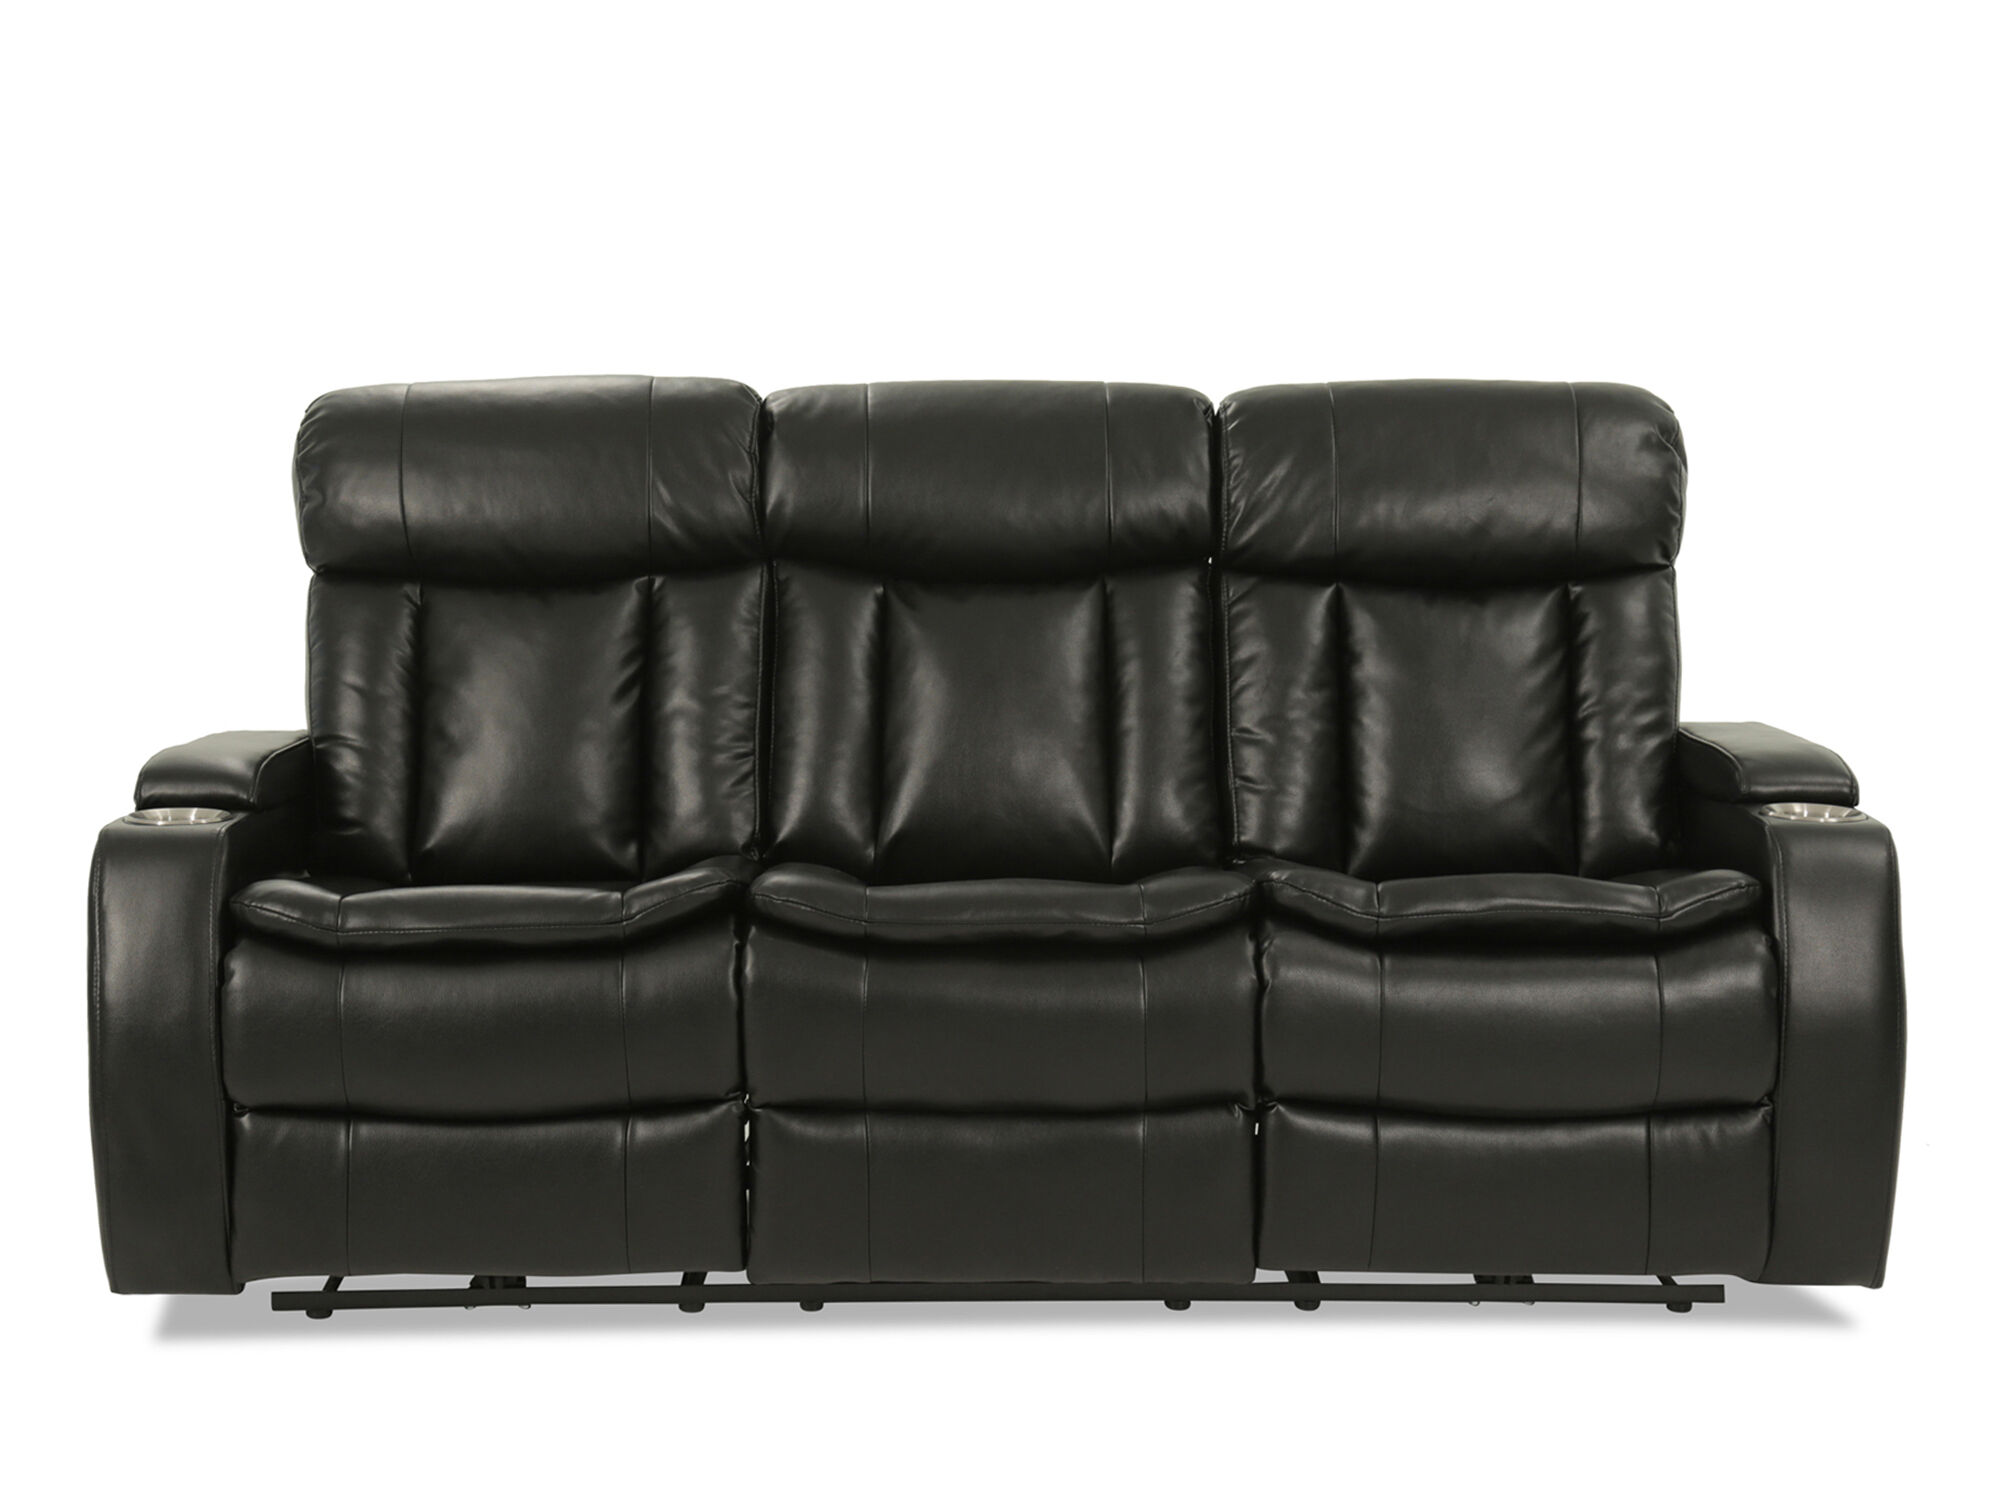 82 5 Reclining Sofa With Usb Port And Blutetooth